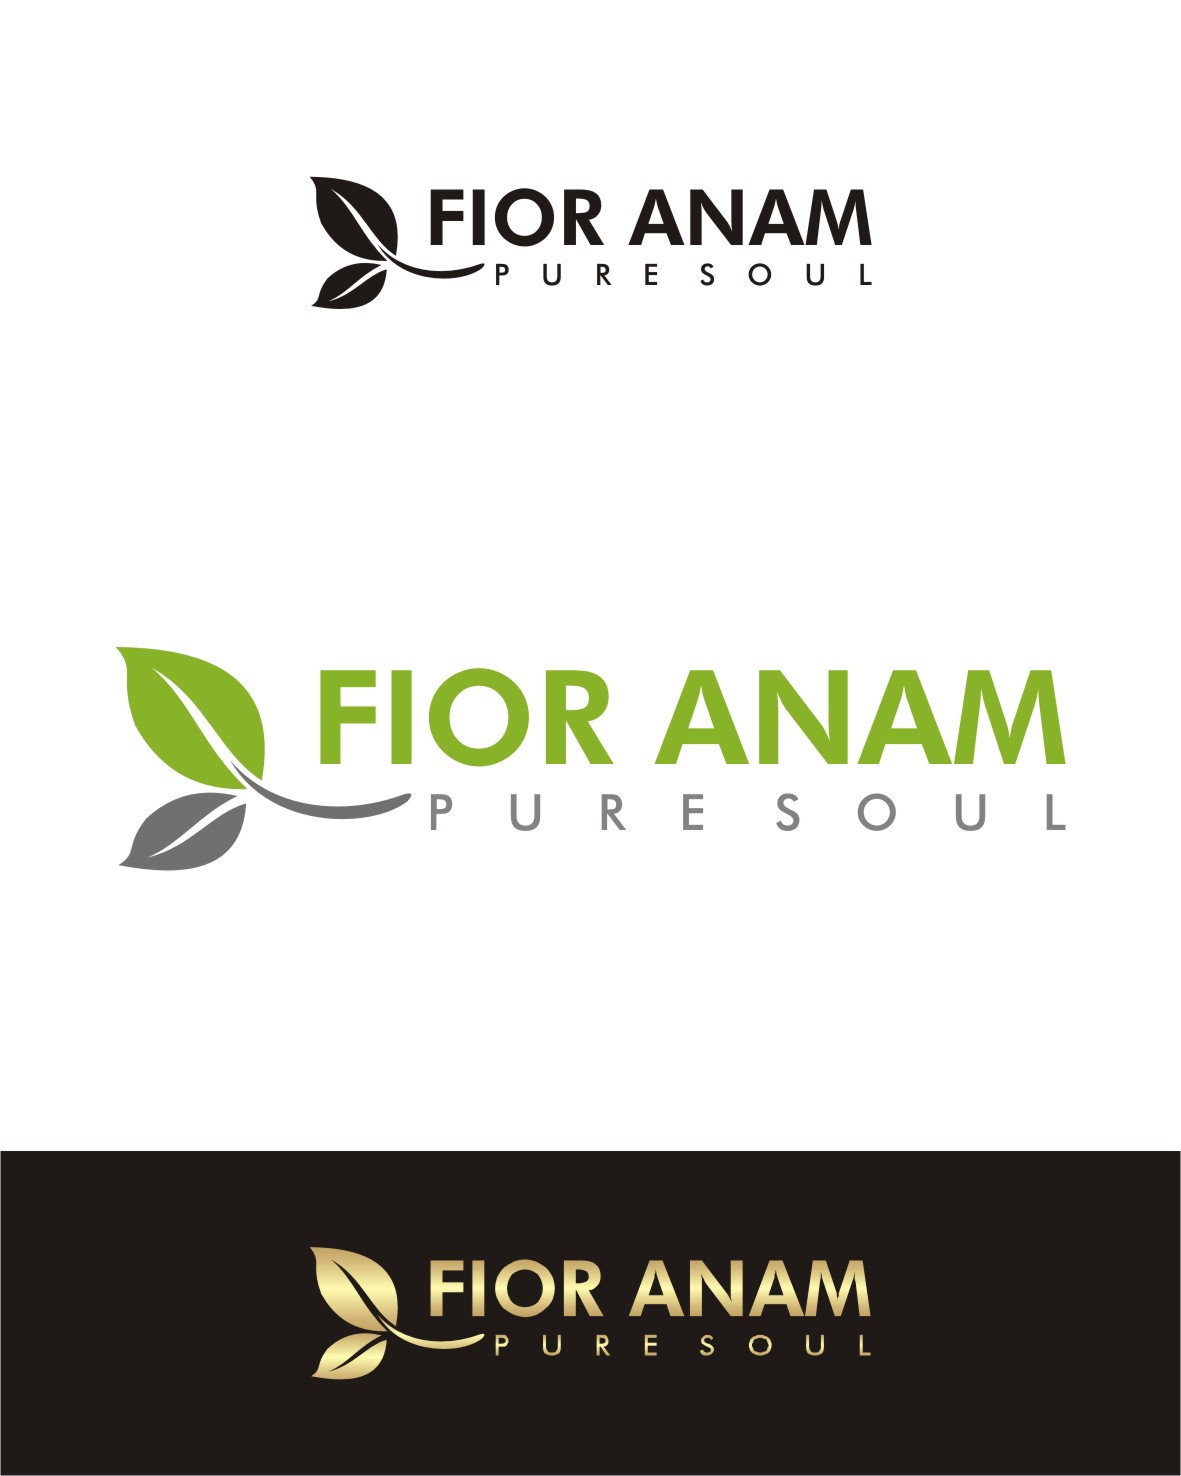 Logo Design by I graphics GRAPHICS - Entry No. 409 in the Logo Design Contest Creative Logo Design for Fior Anam.